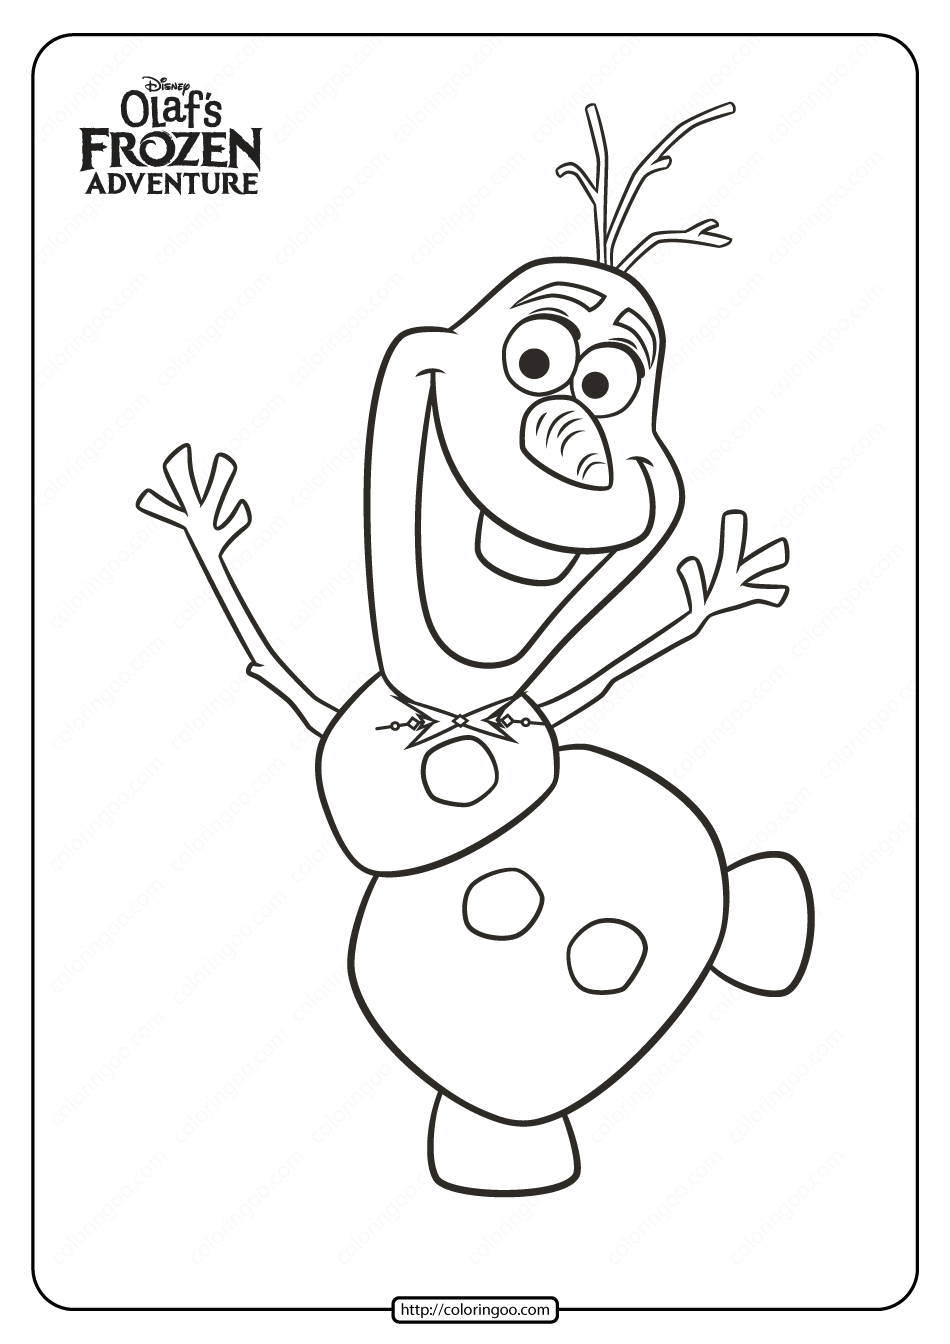 Disney Olaf S Frozen Adventure Coloring Pages 03 Coloring Pages Elsa Coloring Pages Snowman Coloring Pages